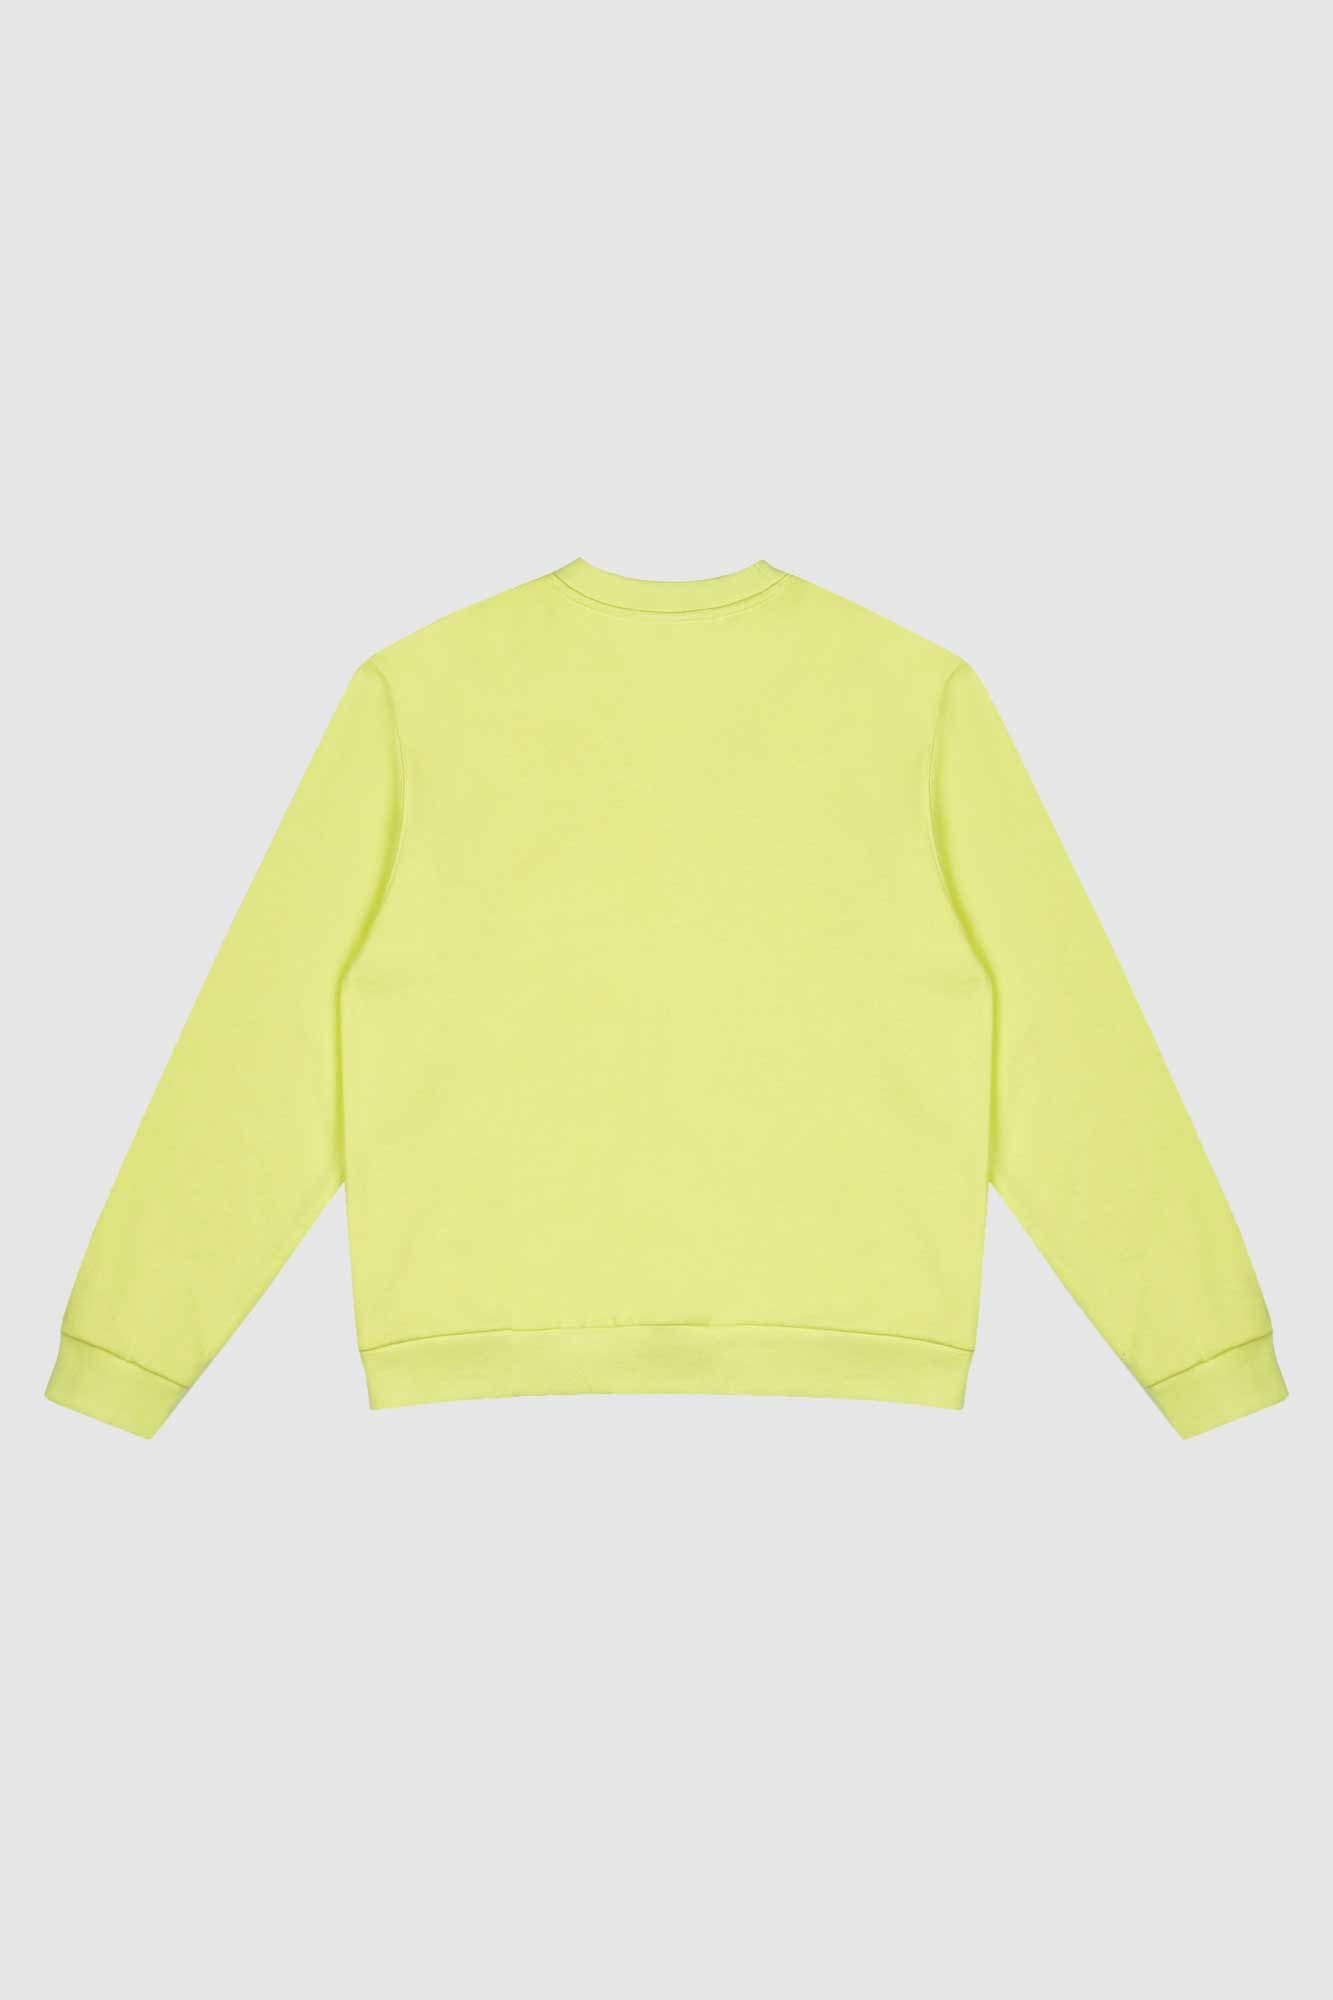 Photo of Lemonade Uniform Crewneck, number 3